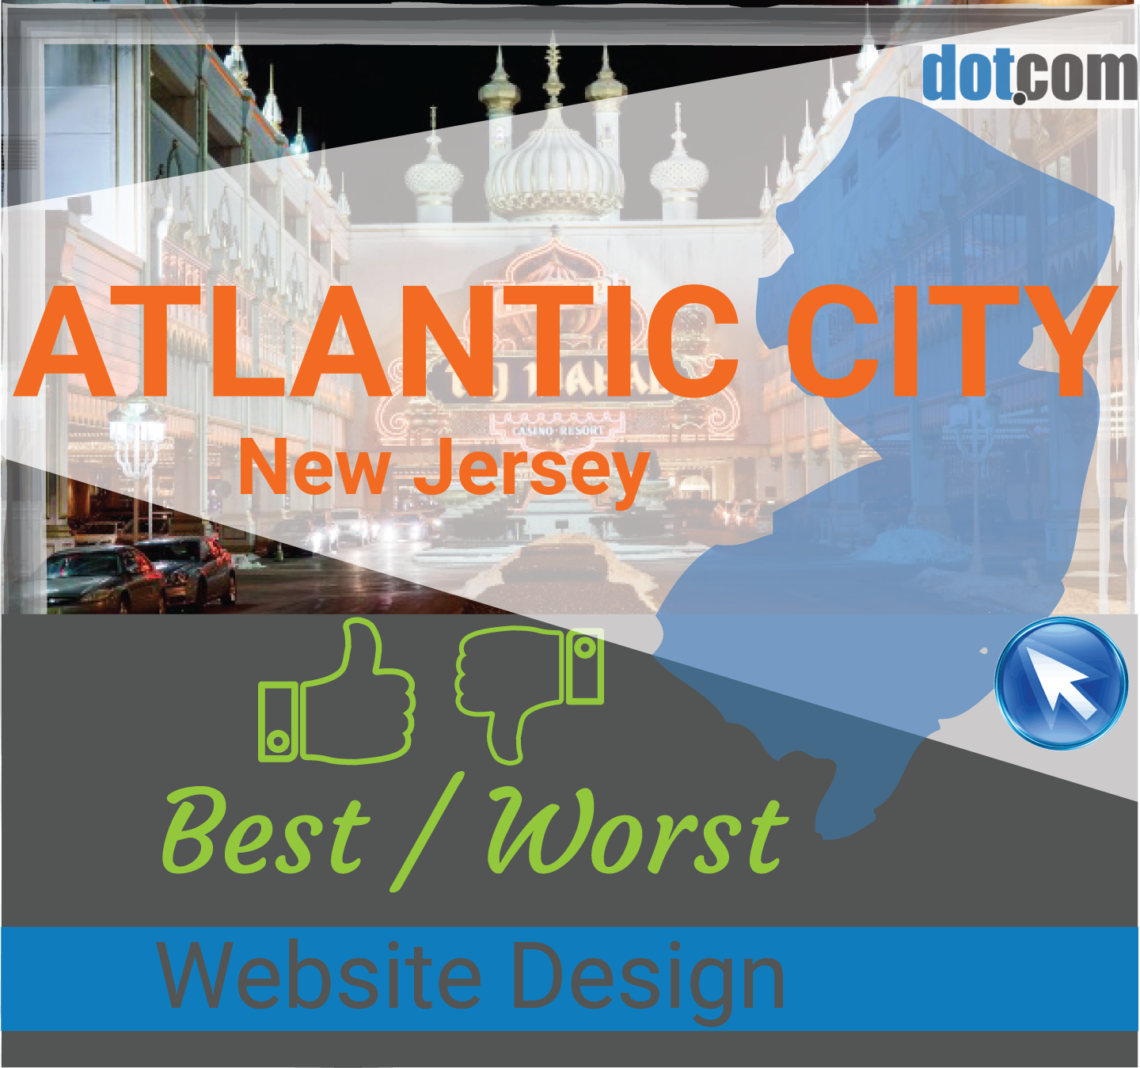 7bb607db5 Atlantic City NJ Website Design, The top BEST and WORST websites in ...